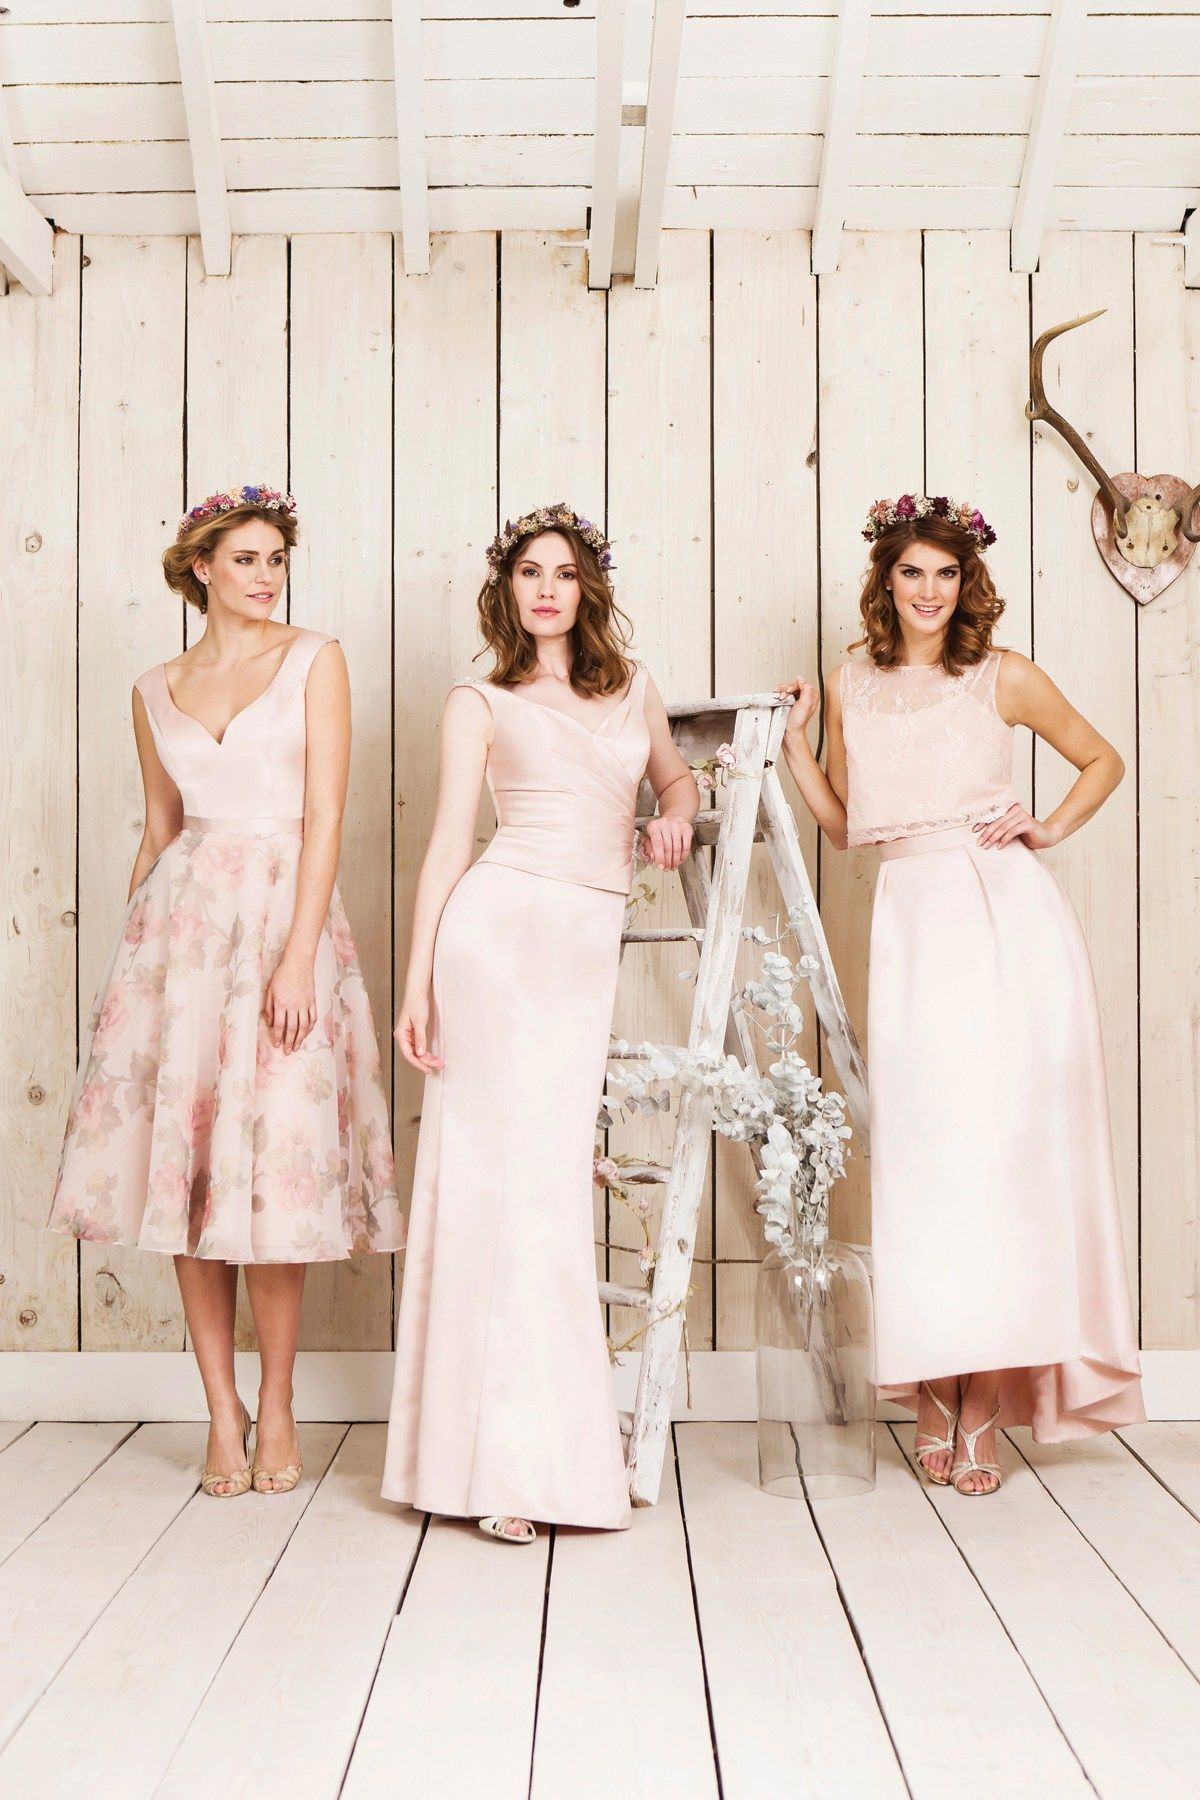 True Bride - Figure Flattering Wedding Dresses For Brides & BridesMaids | Love My Dress®️️ UK Wedding Blog